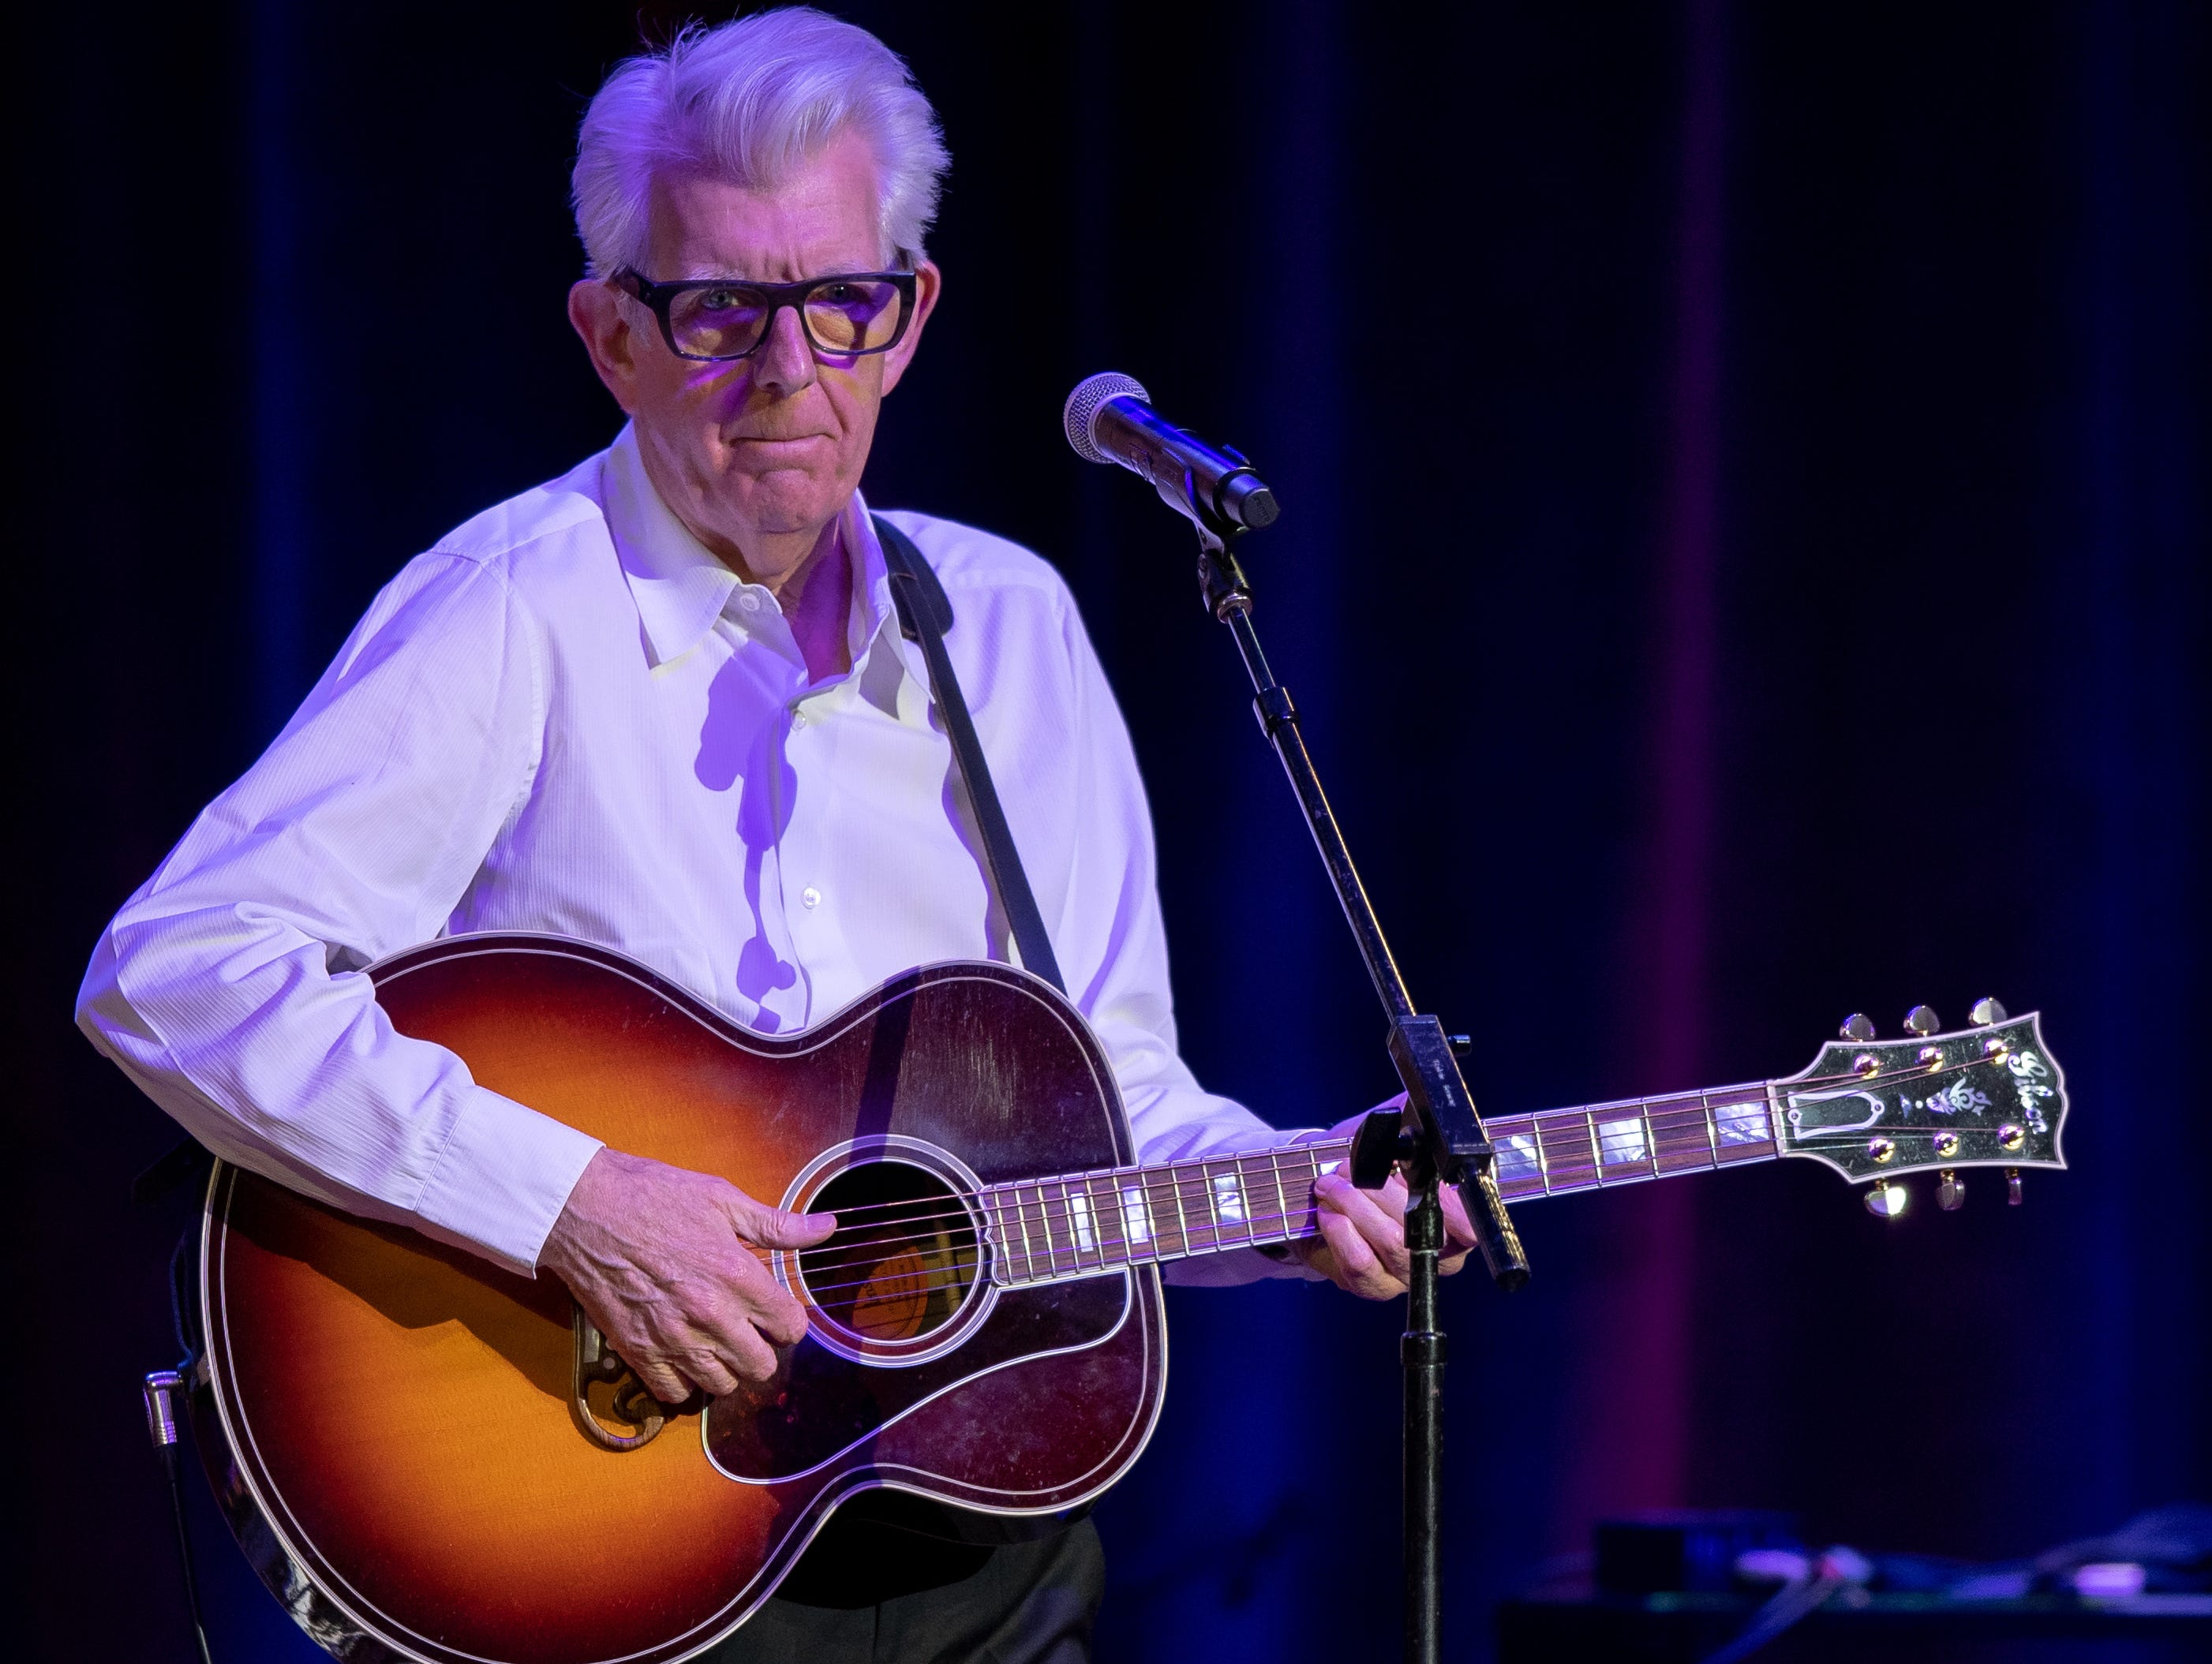 Nick Lowe performs with Mavis Staples during the Mavis and Friends concert at the Ryman Auditorium in Nashville, Tenn., Wednesday, May 15, 2019.